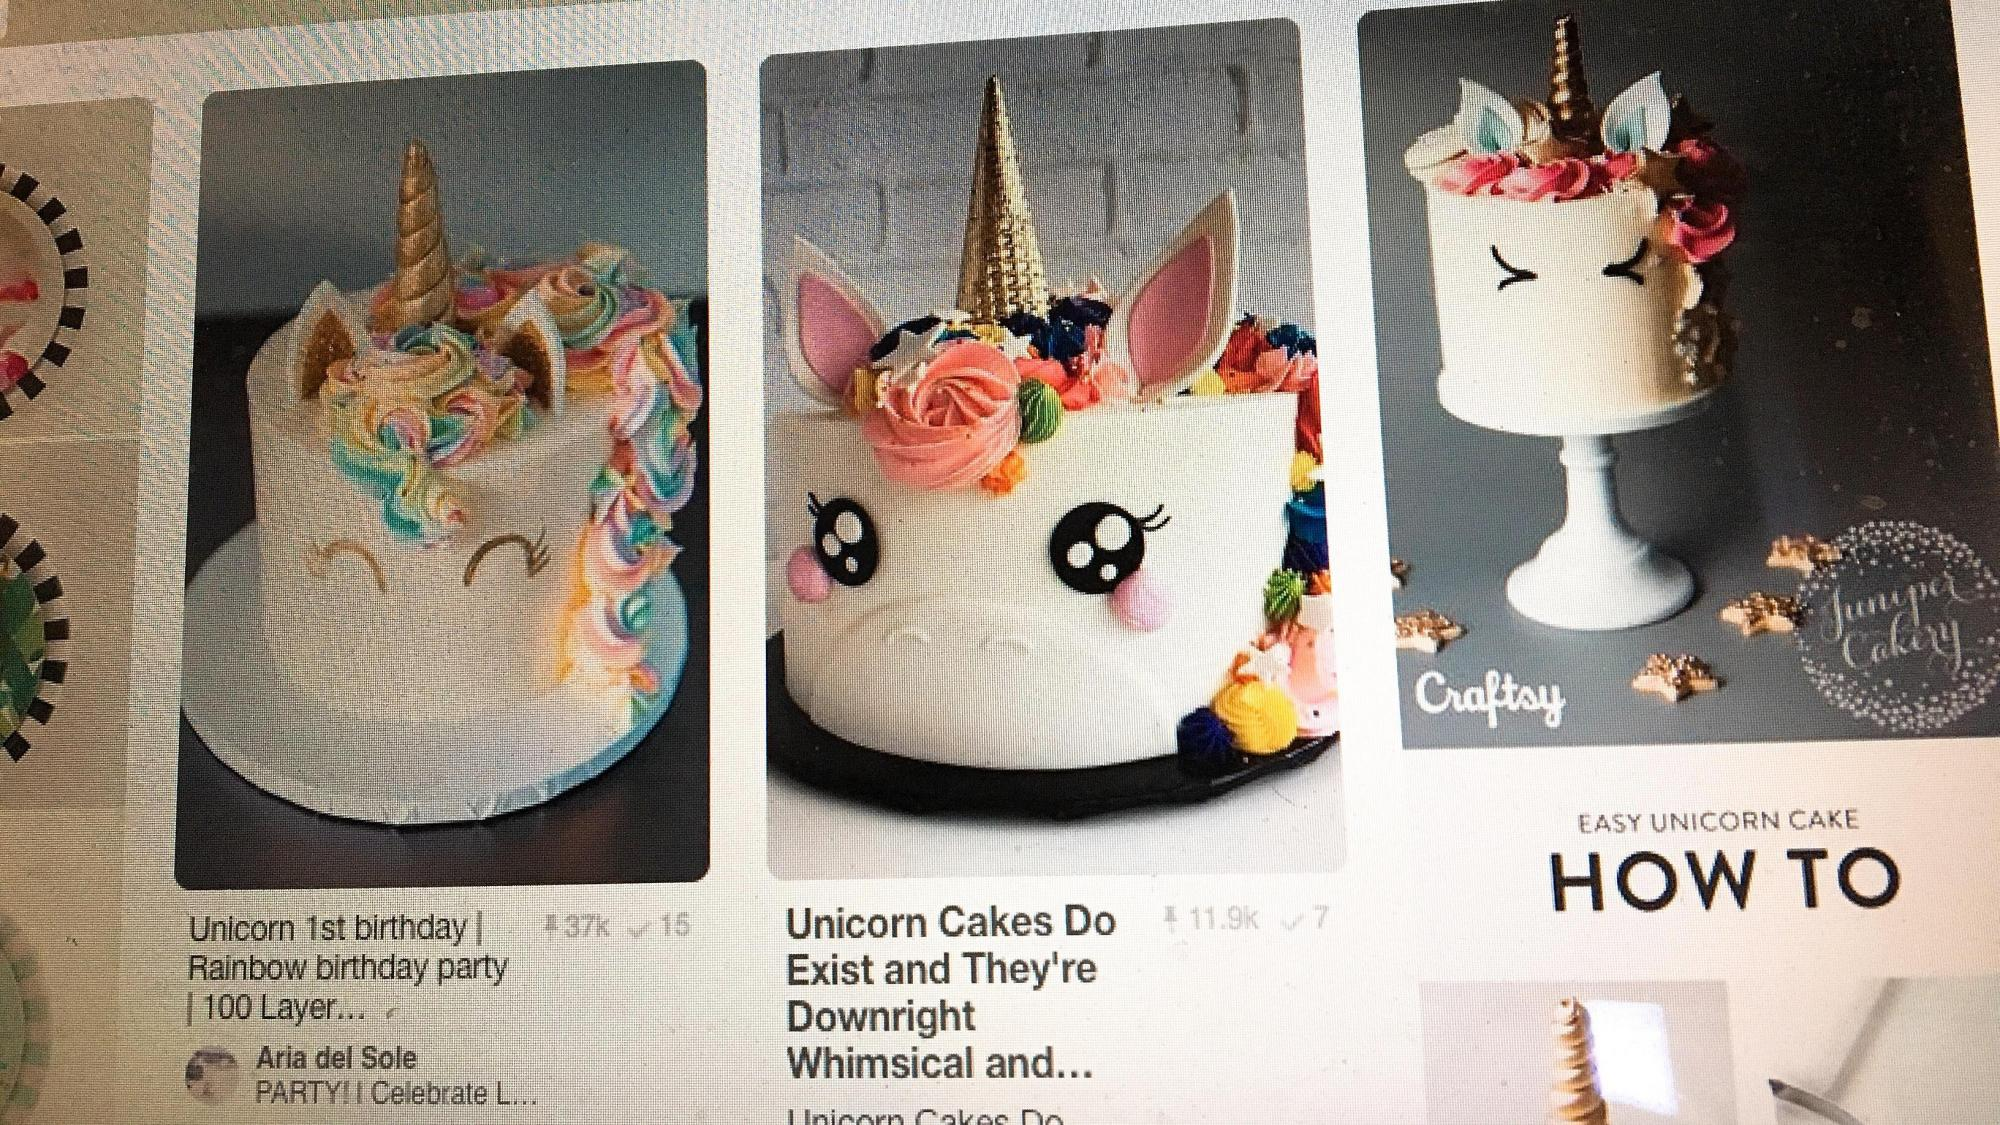 Pinterest Fail: Popular unicorn cake not so easy to make